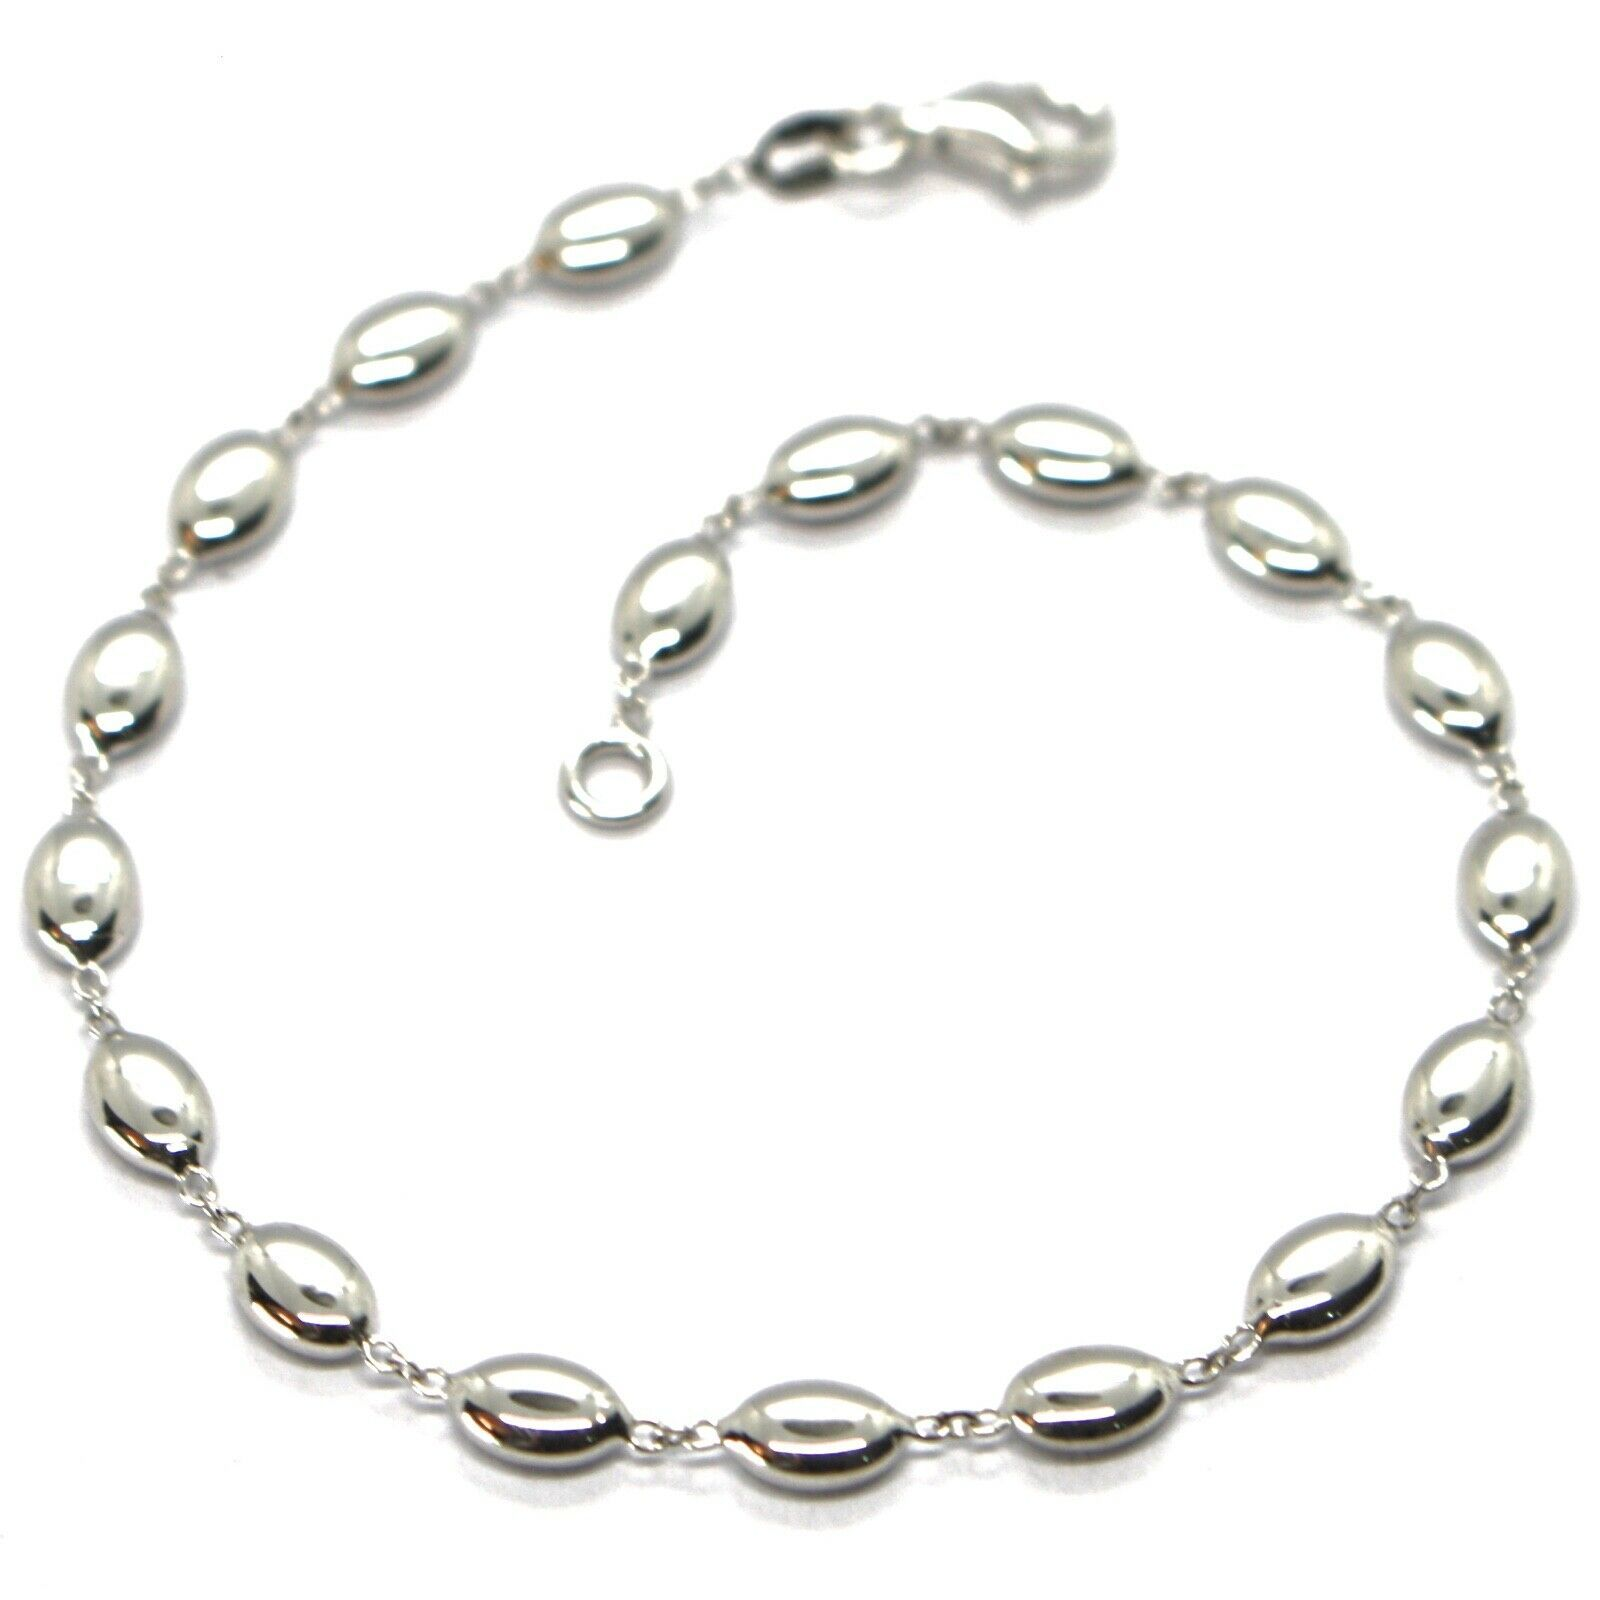 Primary image for Bracelet White Gold 18K 750, Bean of Rice, Ovals Pantry, Polished, 19.5 CM